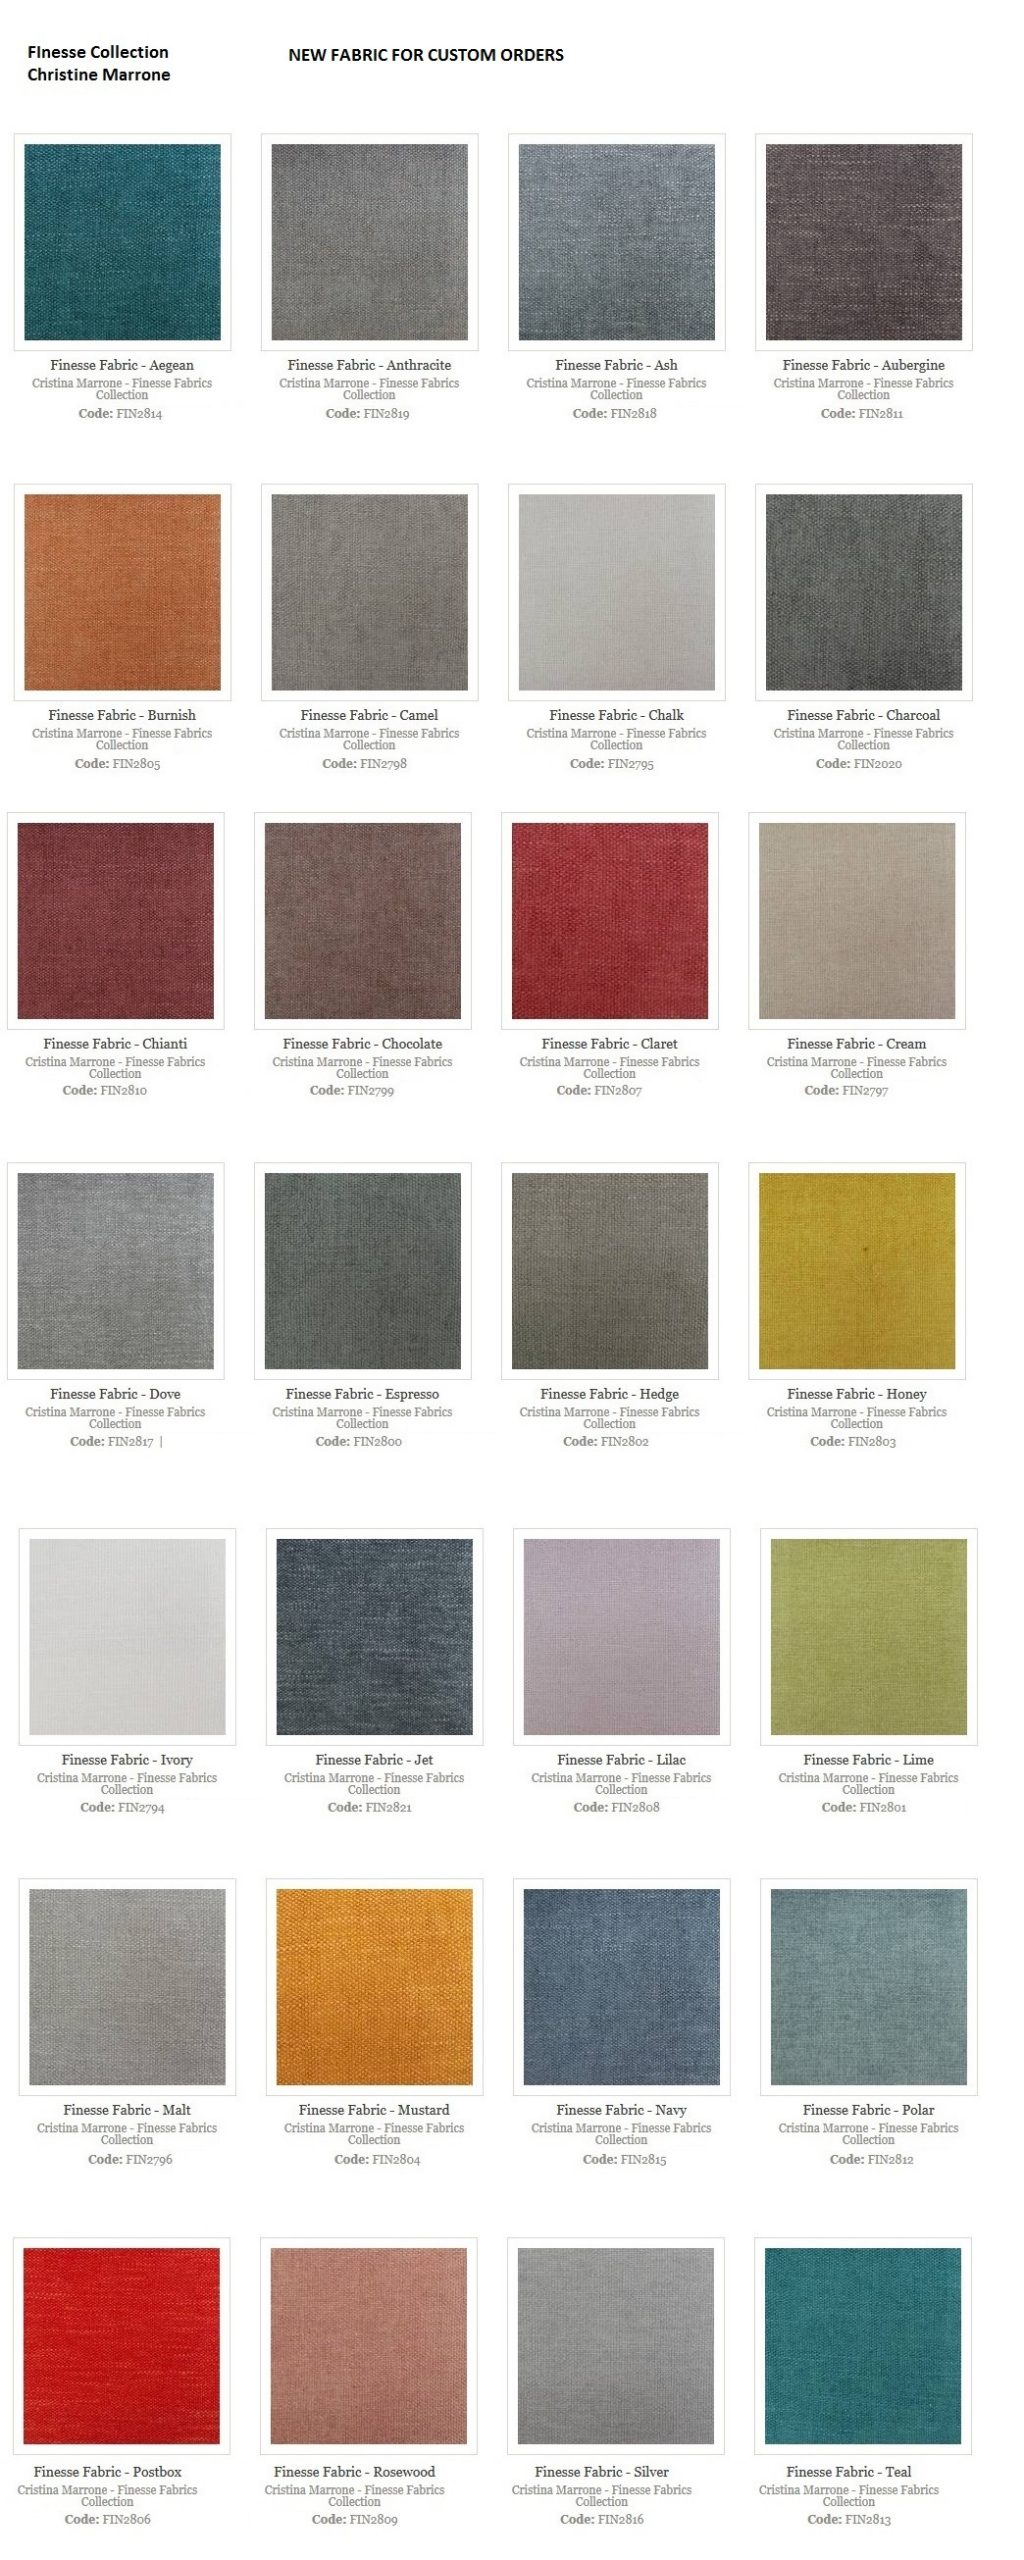 FINESSE FABRIC COLLECTION 2021